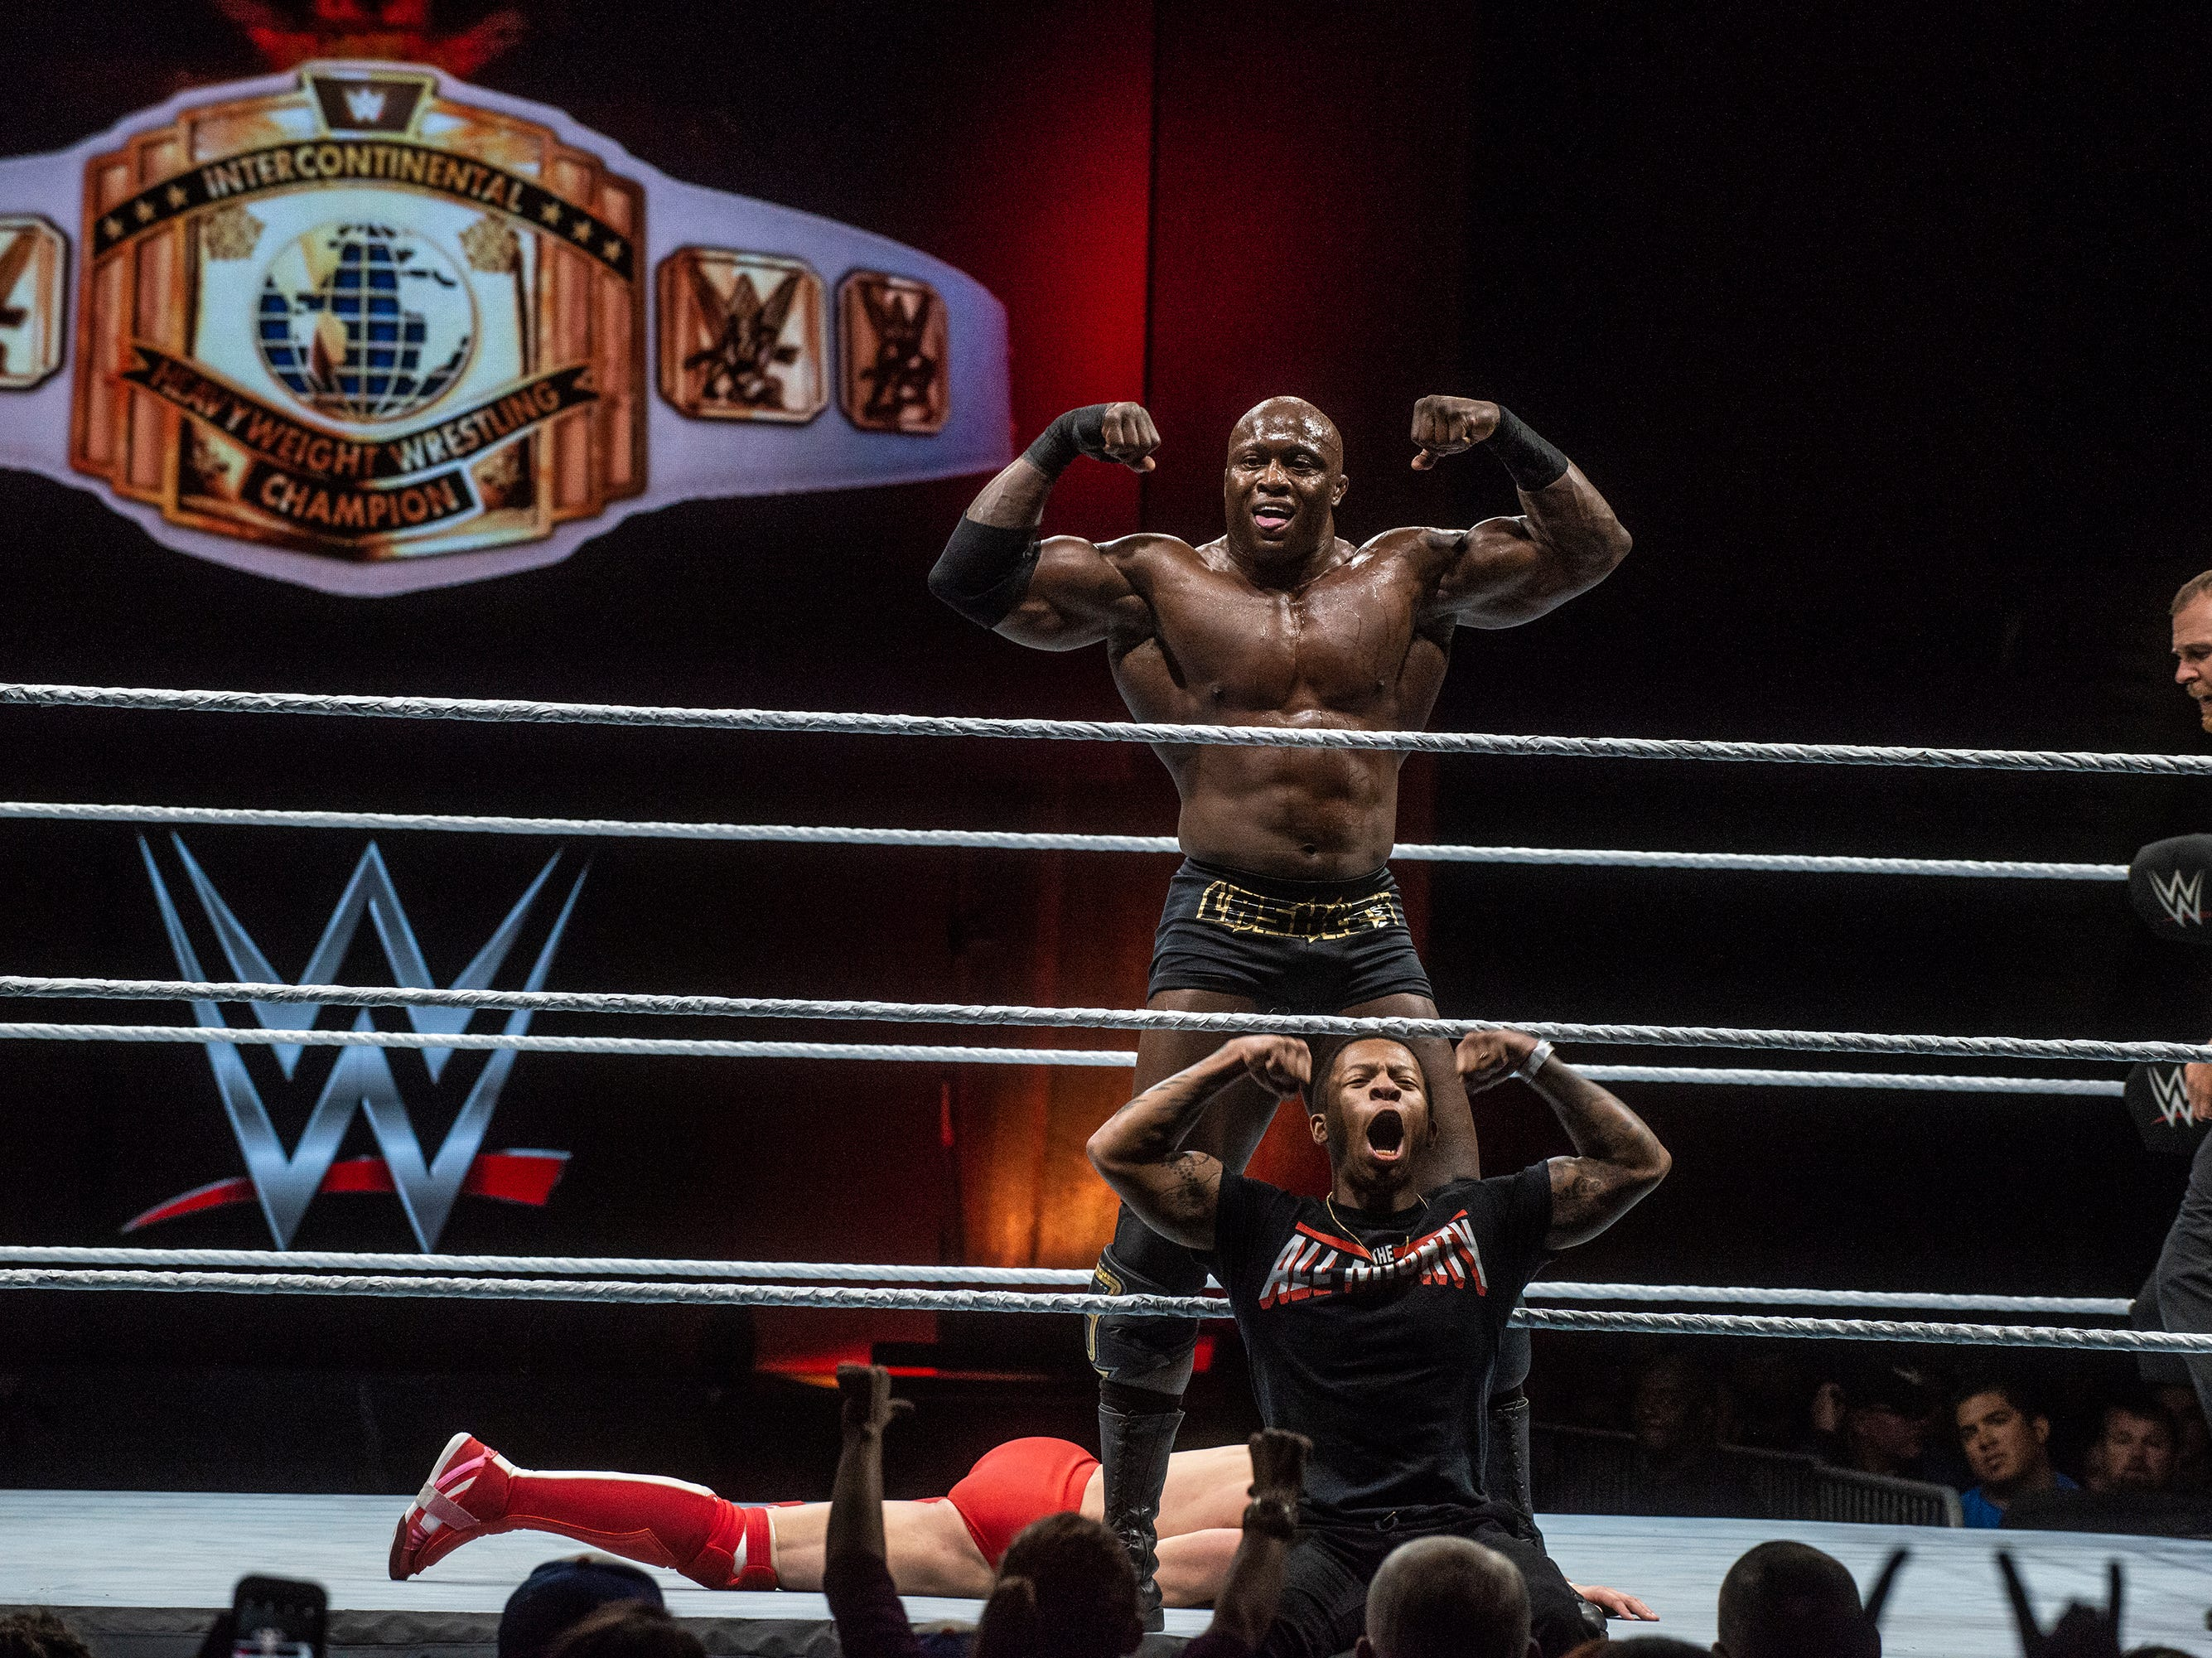 Bobby Lashley poses for the crowd in during his match with Intercontinental Heavyweight Wrestling Champion Finn Balor. WWE Live Road to Wrestlemania came to Garrett Coliseum in Montgomery on Sunday, Feb. 24, 2019.